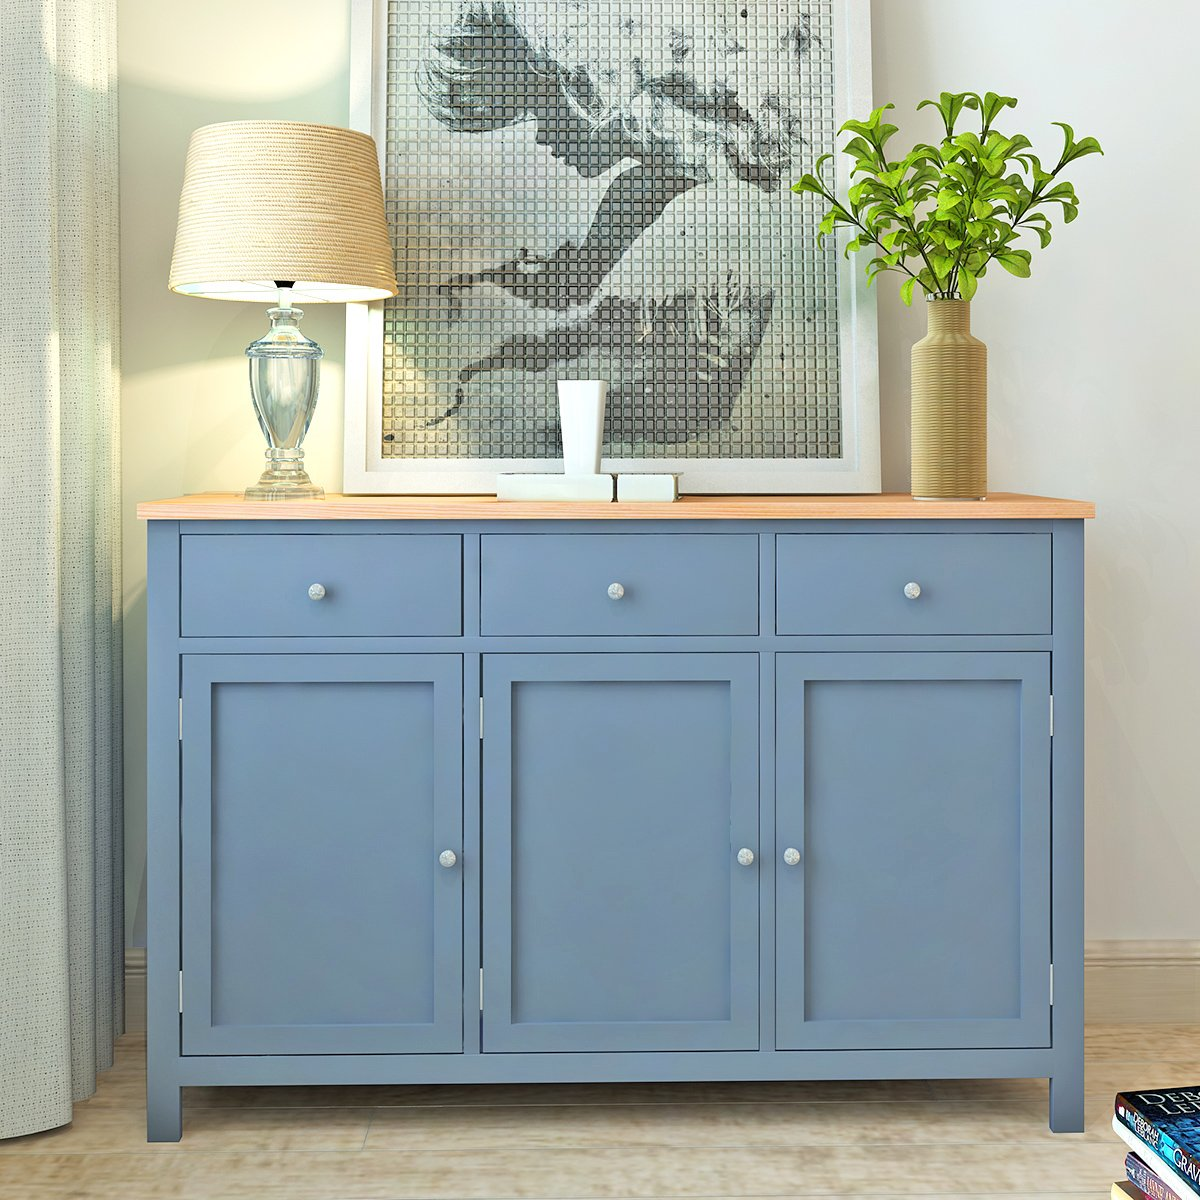 Britoniture Oak Sideboard Painted Grey Large Wooden Storage Cabinet ...